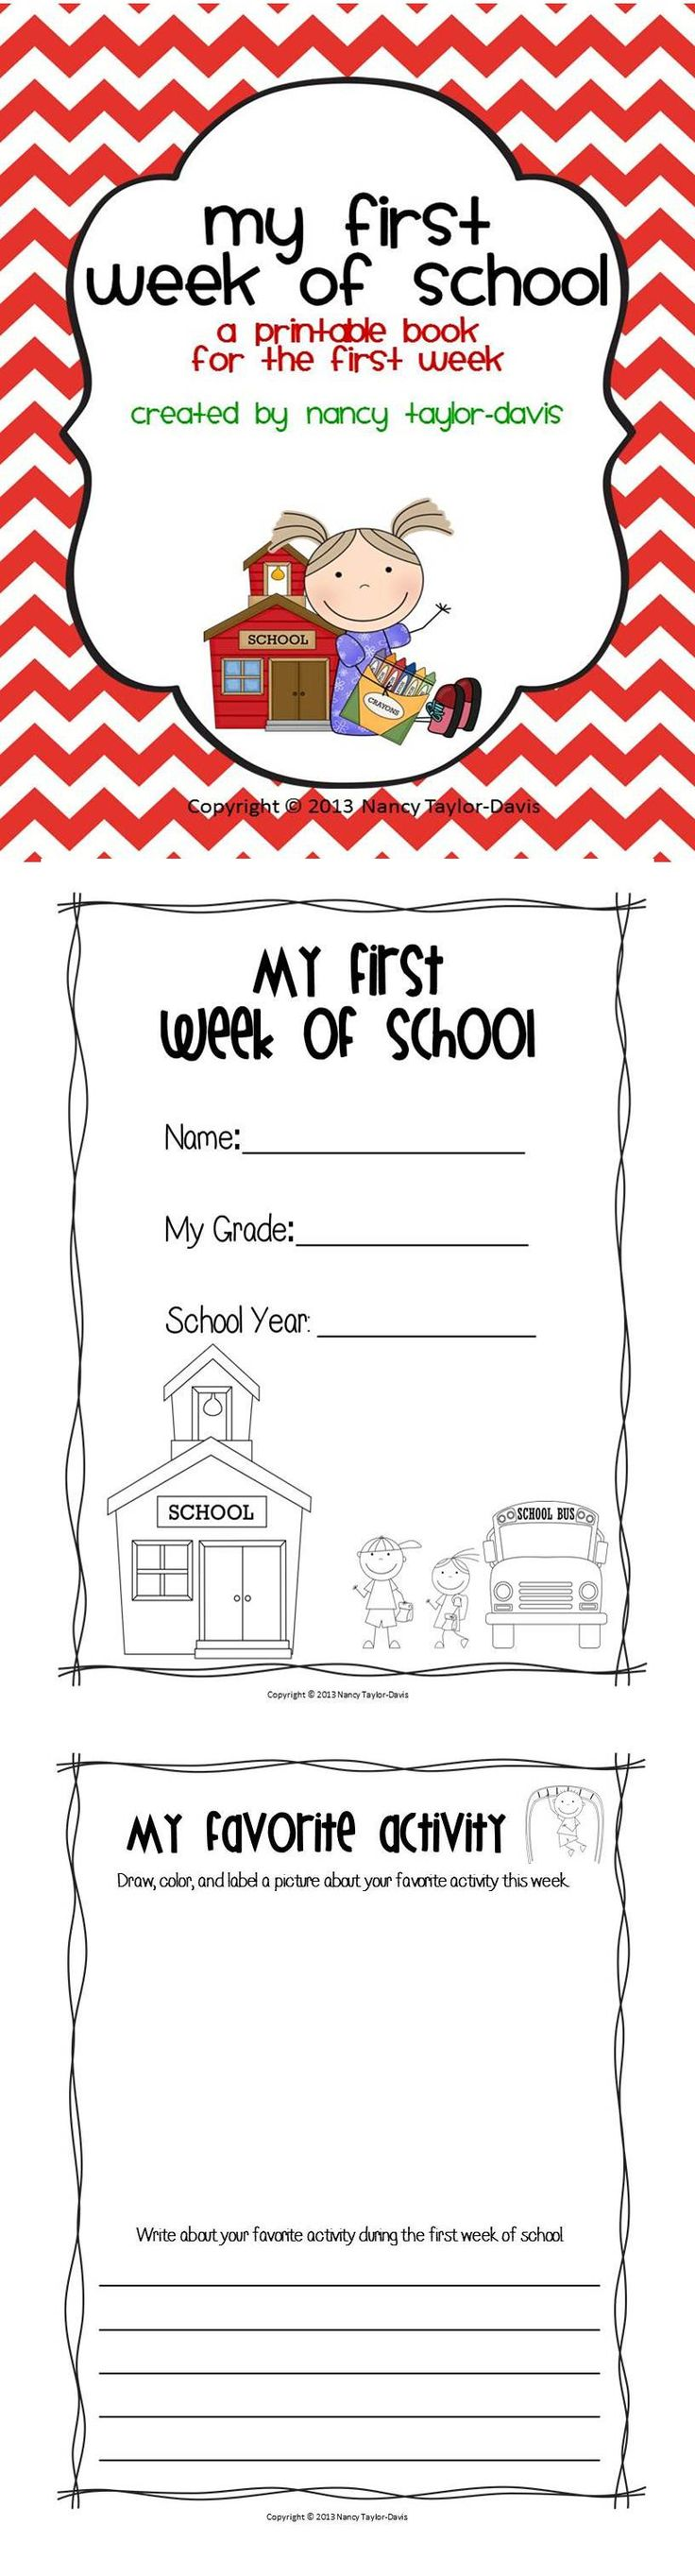 worksheet Being A Good Citizen Worksheet 10 images about citizenship first grade on pinterest teaching this 8 page printable book will be a great resource during the week of school